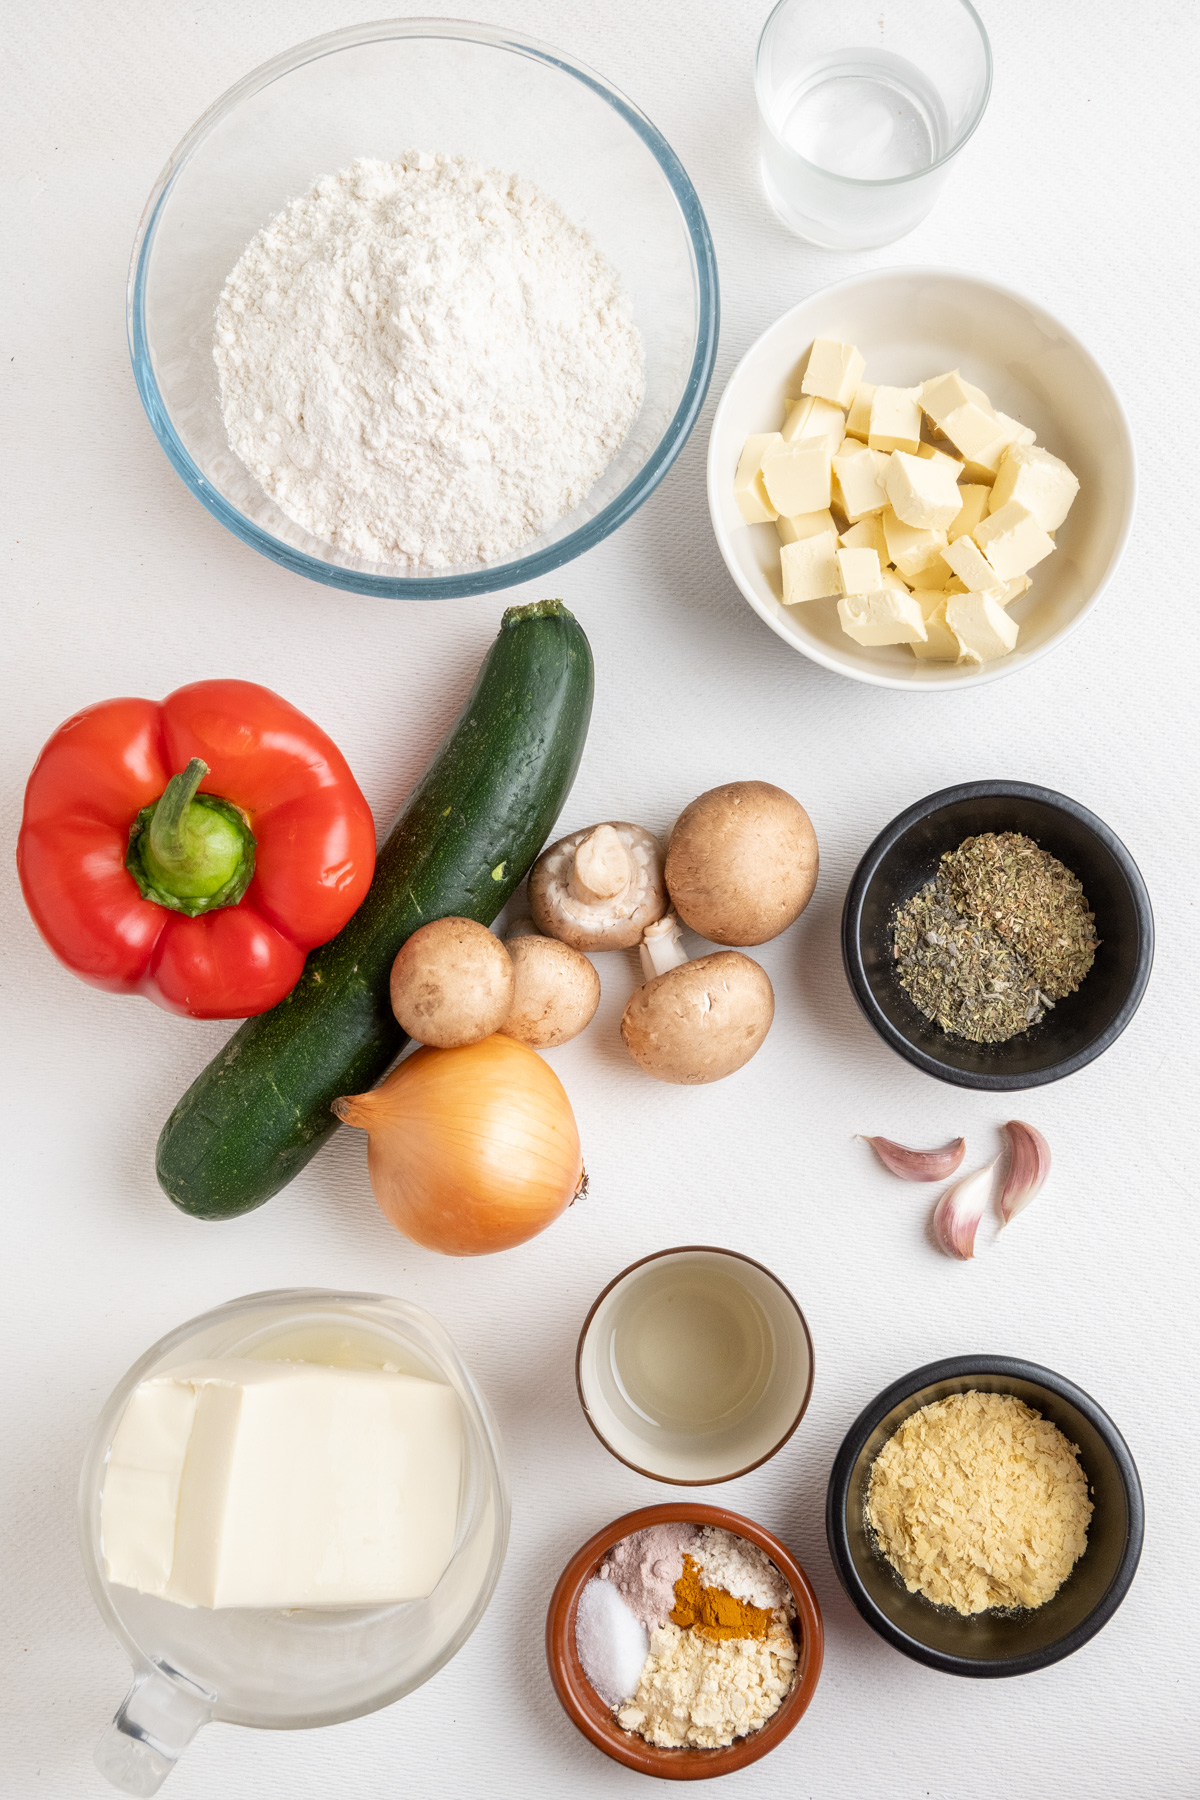 Ingredients for vegan vegetable quiche on a white surface.